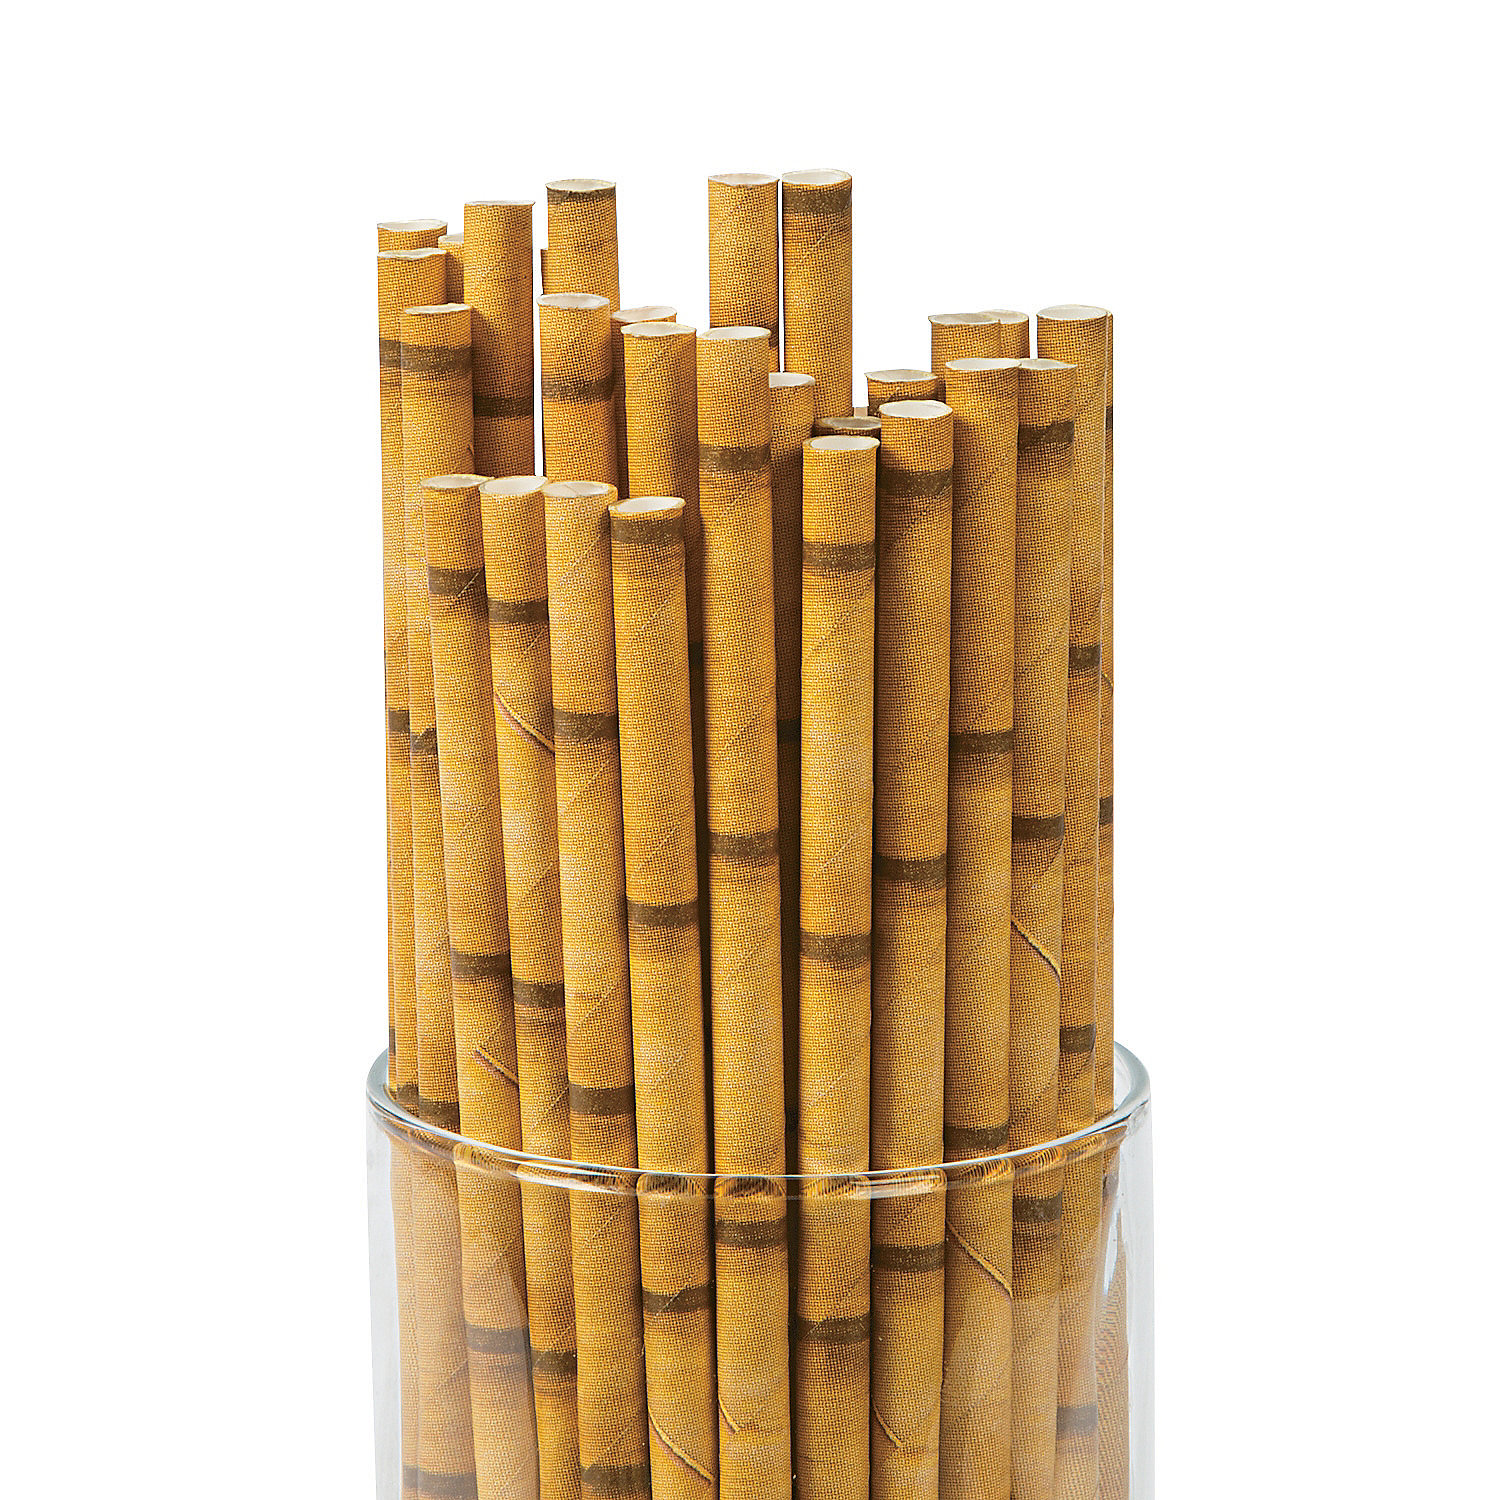 IN-13686159 Bamboo Paper Straws